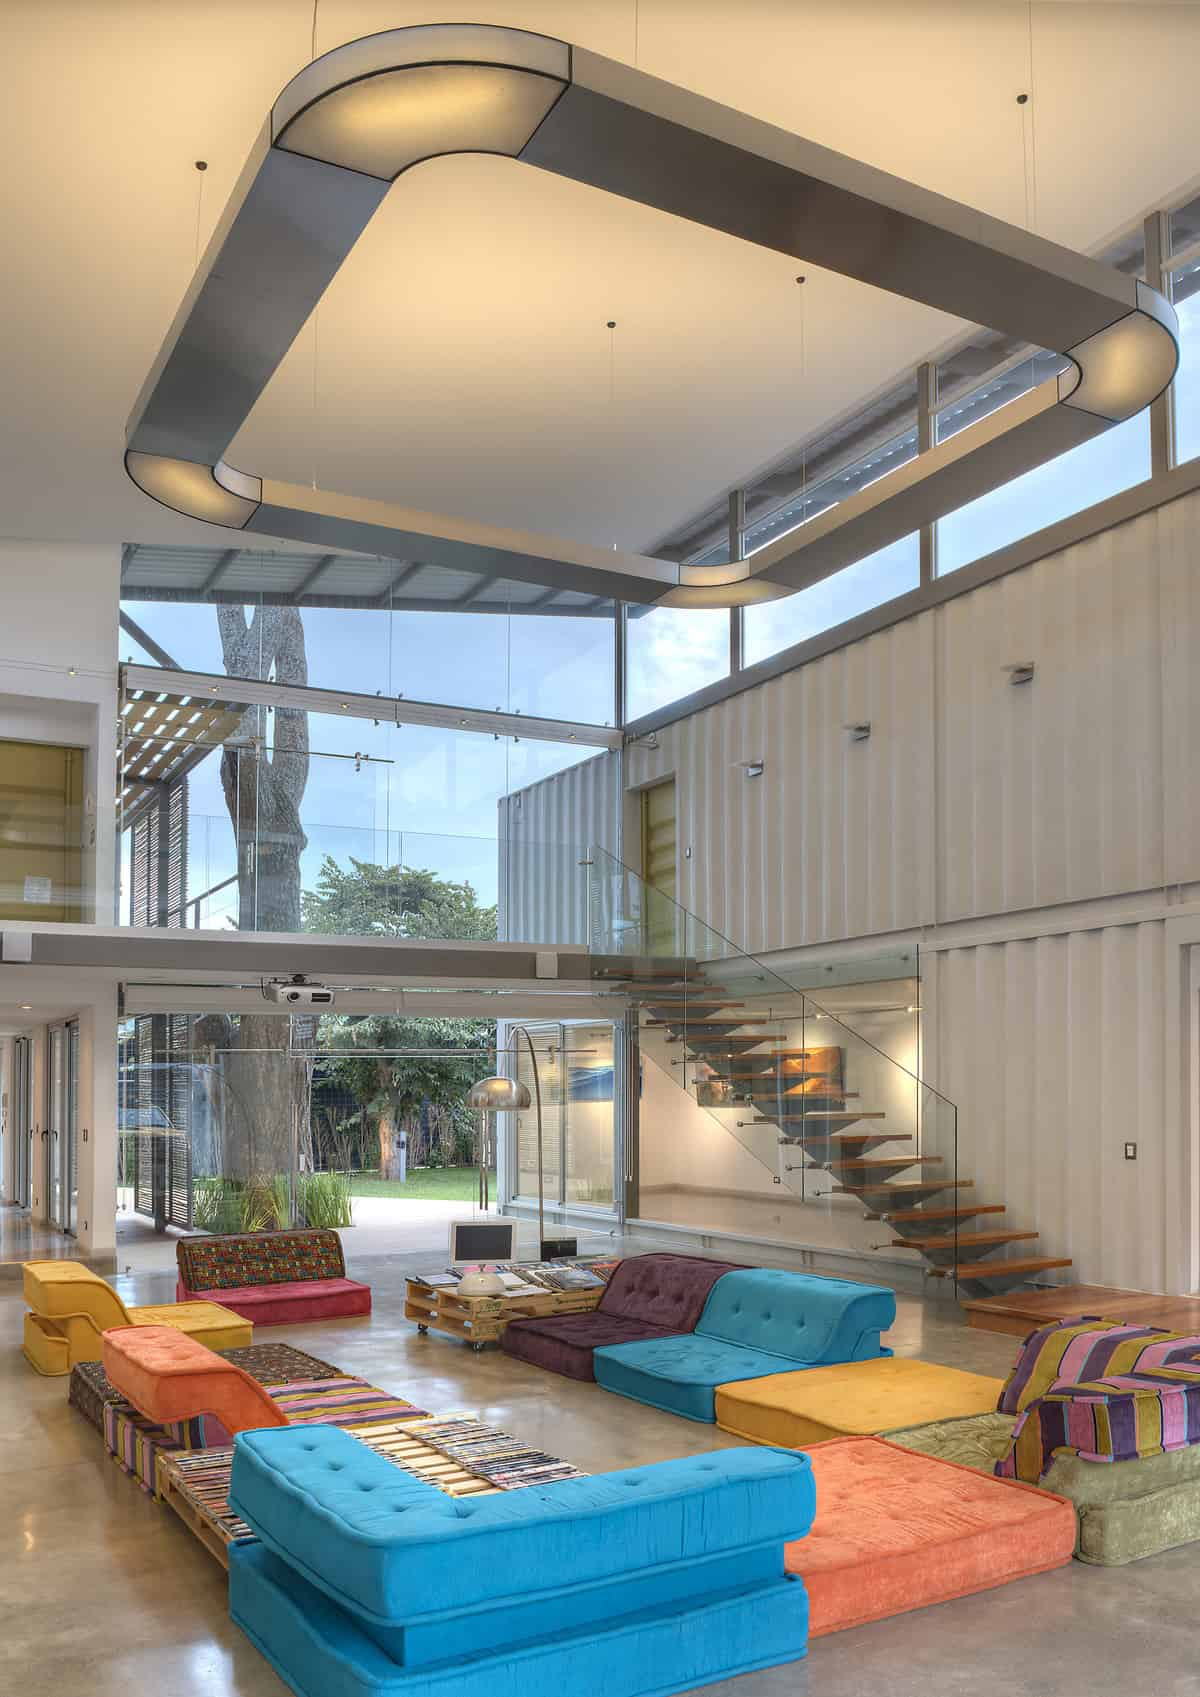 8 Shipping Containers Make Up a Stunning 2-Story Home  Modern House Designs